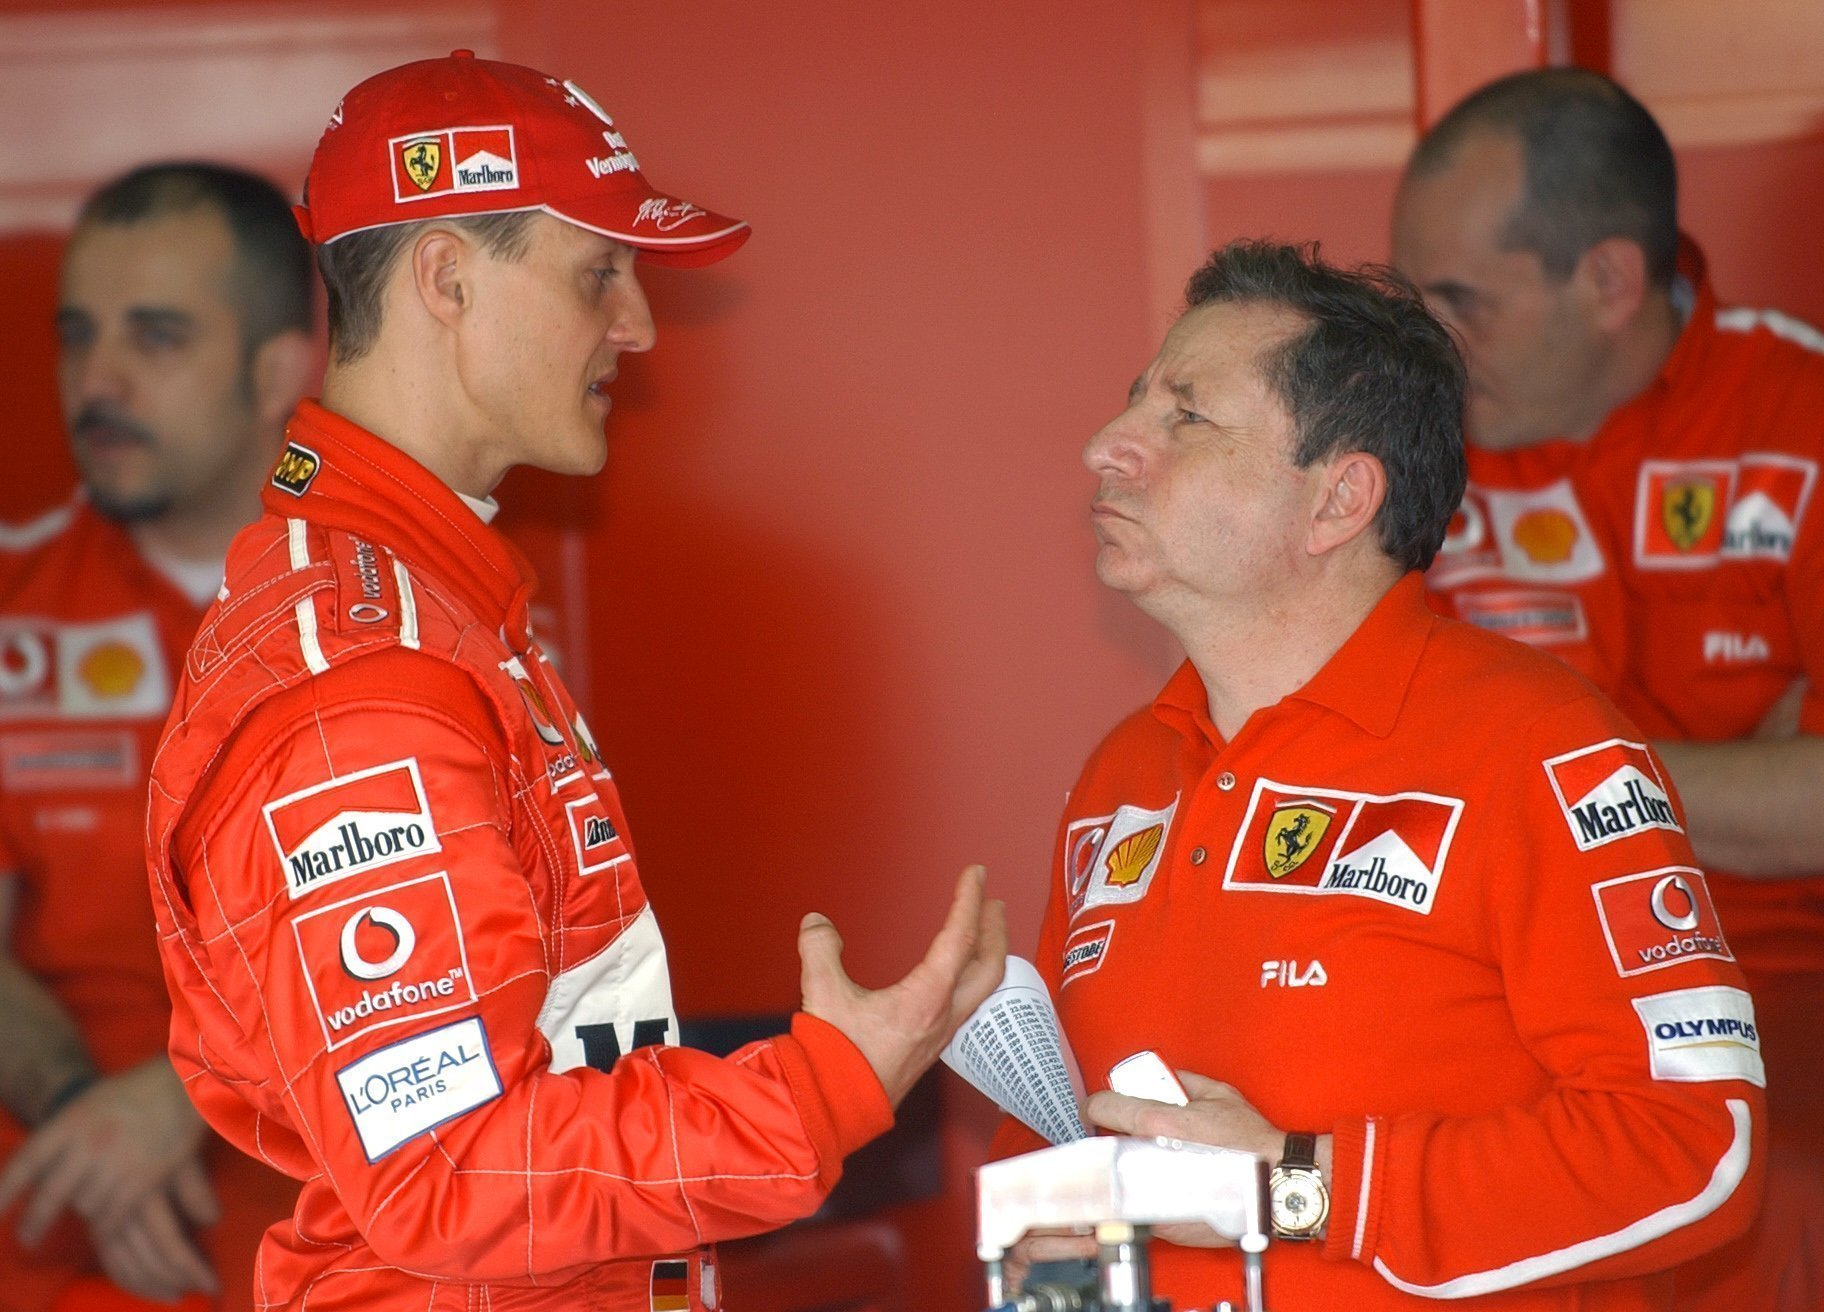 Schumacher has not been seen in public since a ski accident in 2013. Credit: PA